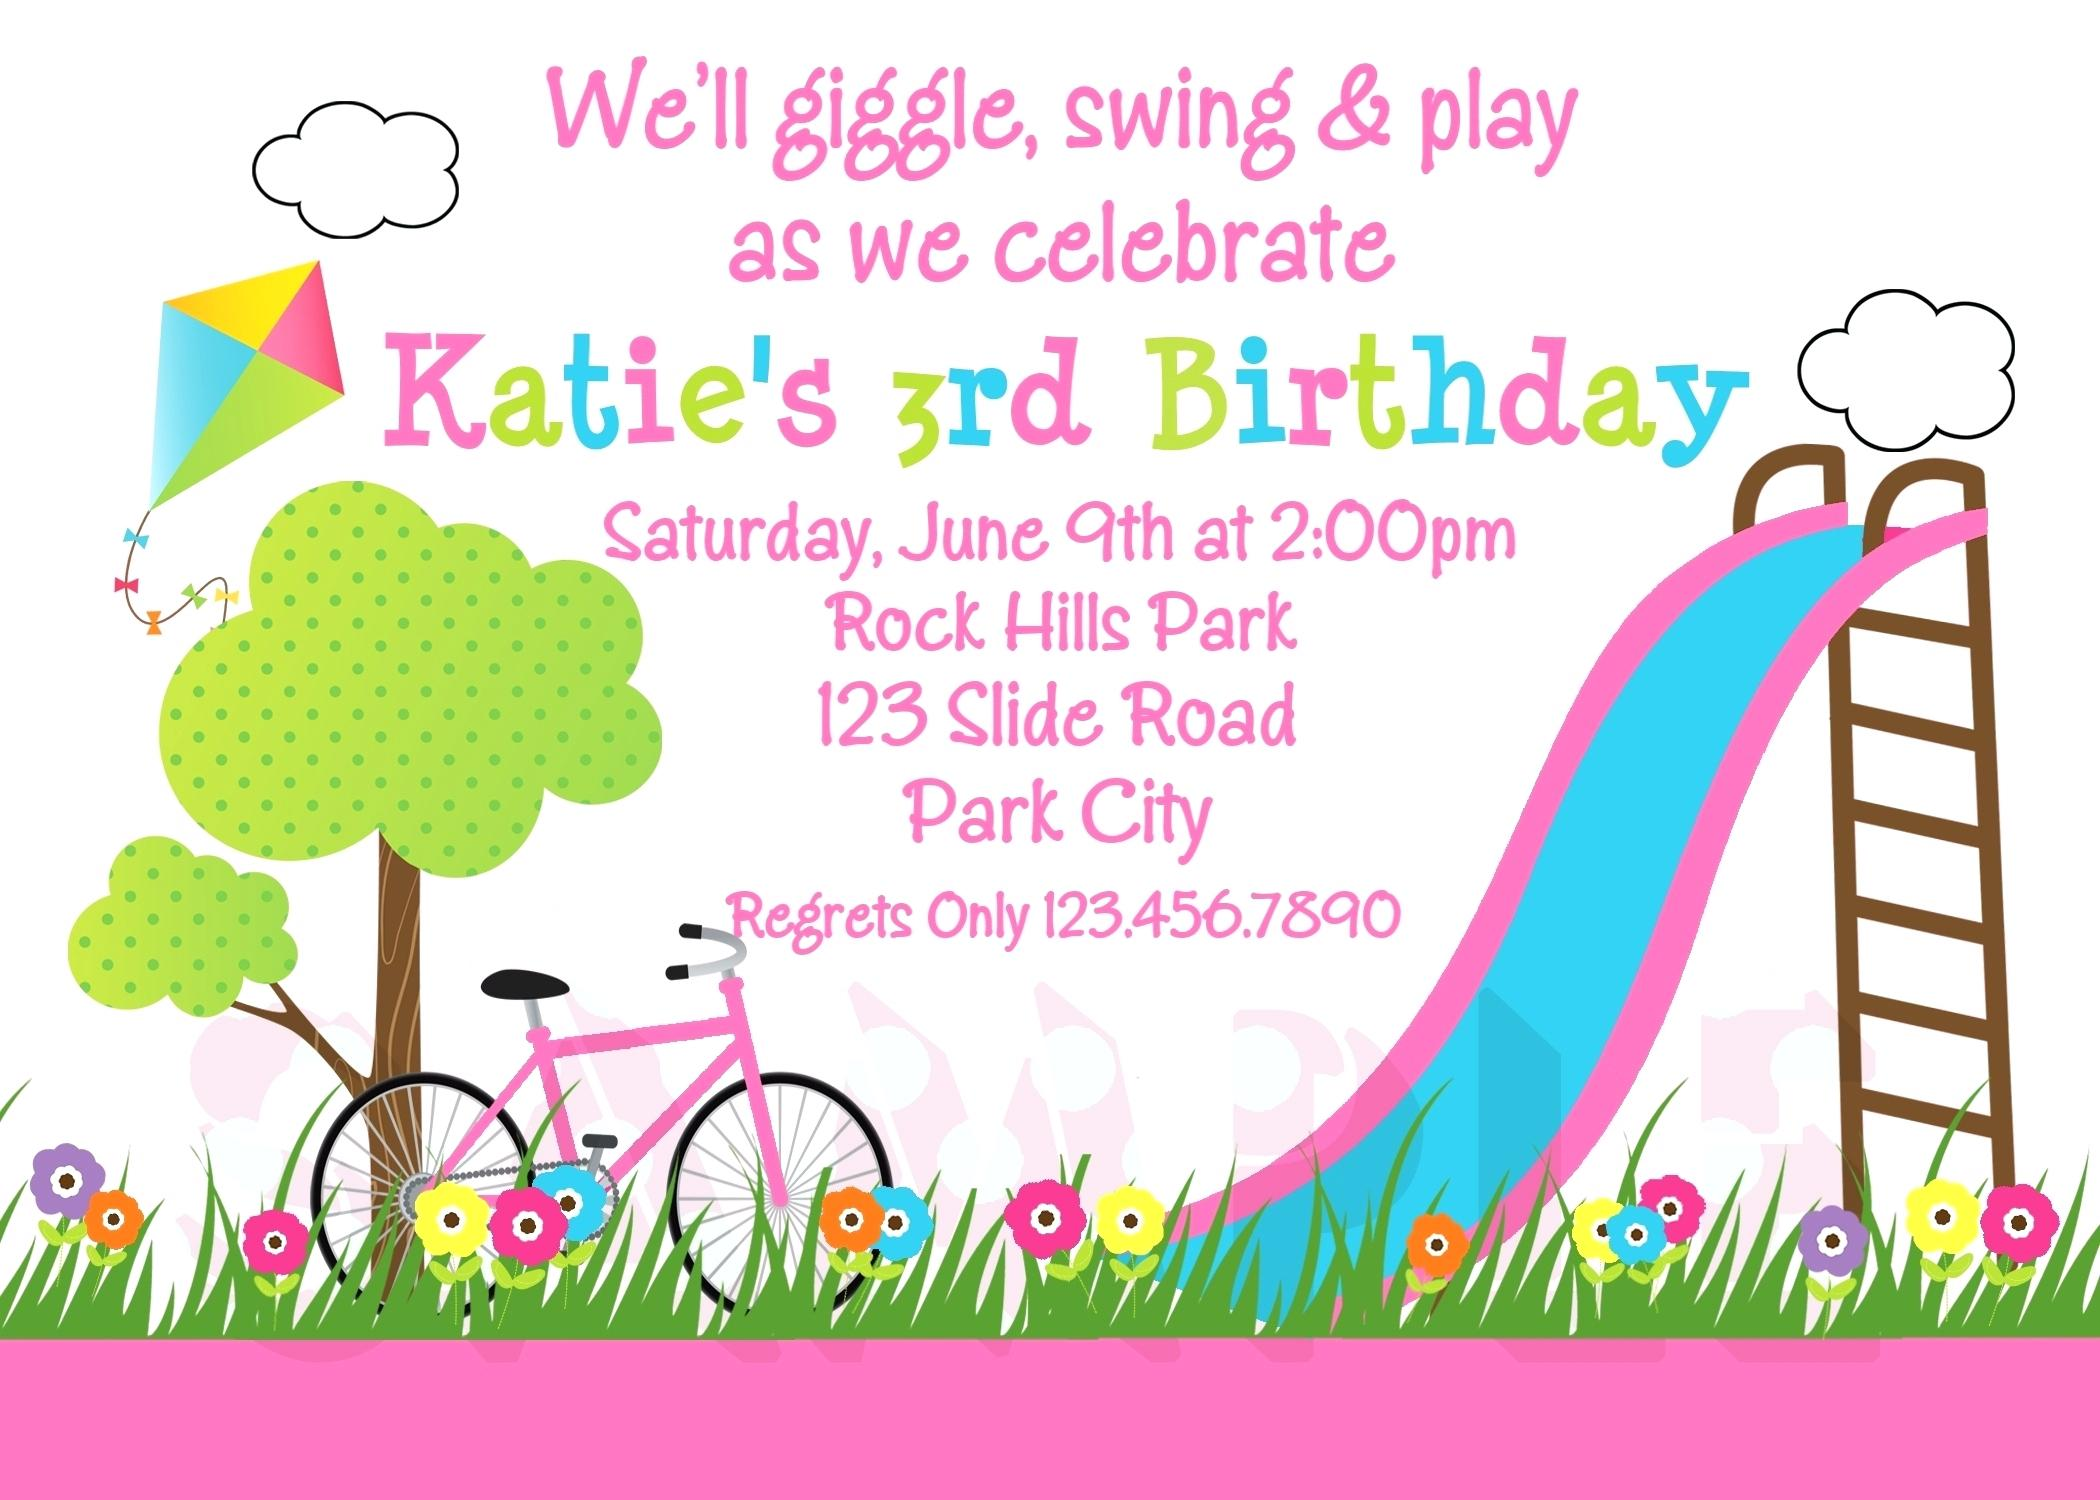 birthday party invitation template photoshop ; birthday-invitation-template-princess-party-invitations-beautiful-design-maker-in-conjunction-with-templates-photoshop